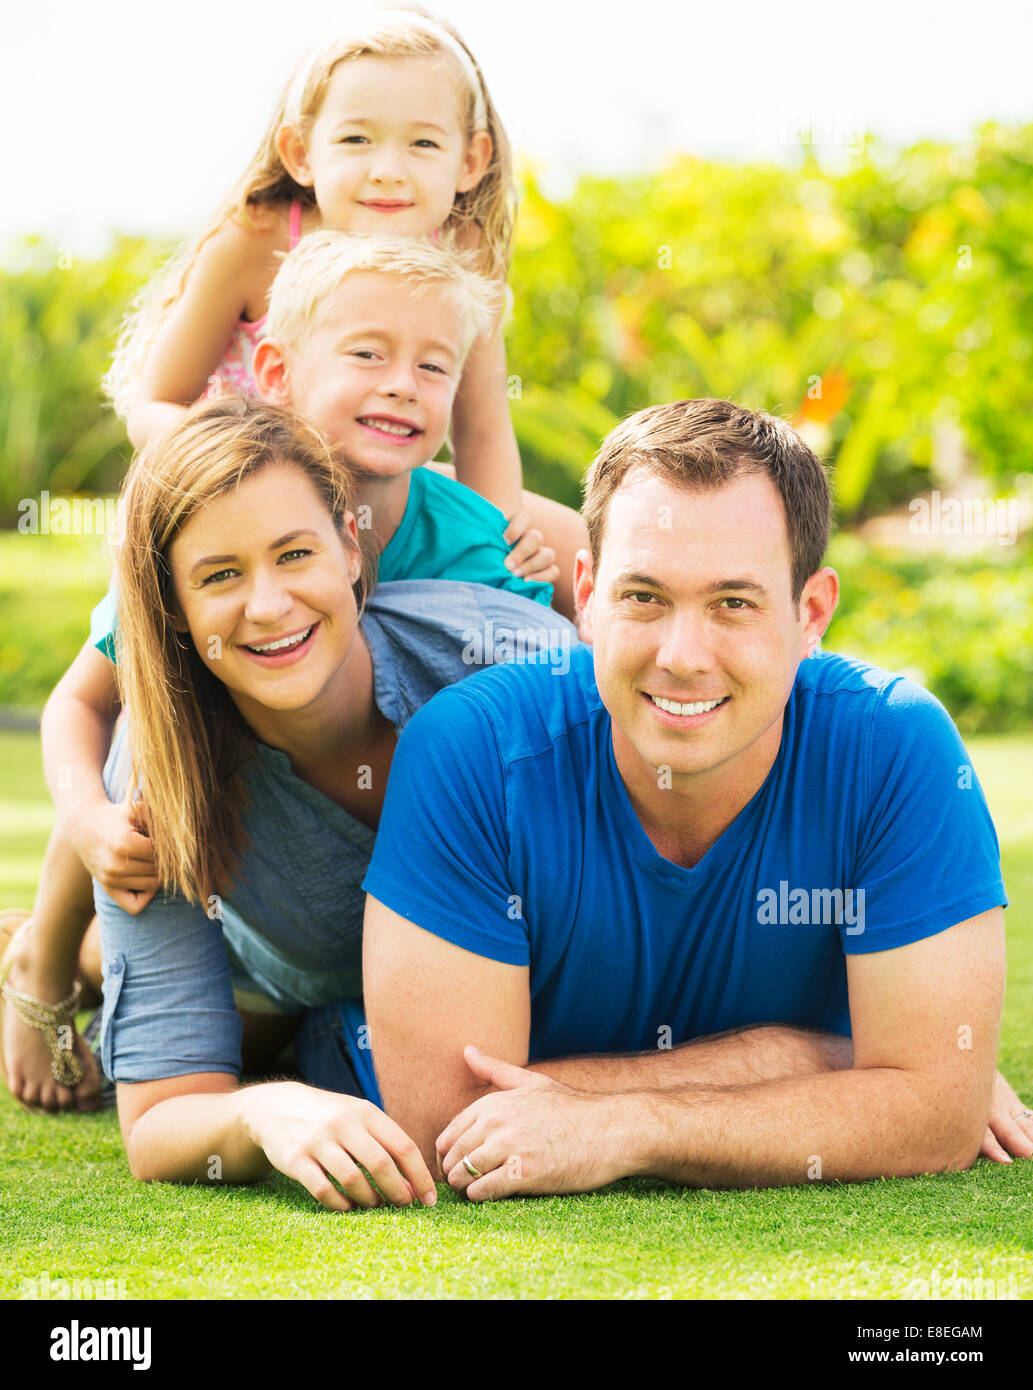 Portrait of Happy Family of Four Outside. Parents and Two Young Children - Stock Image